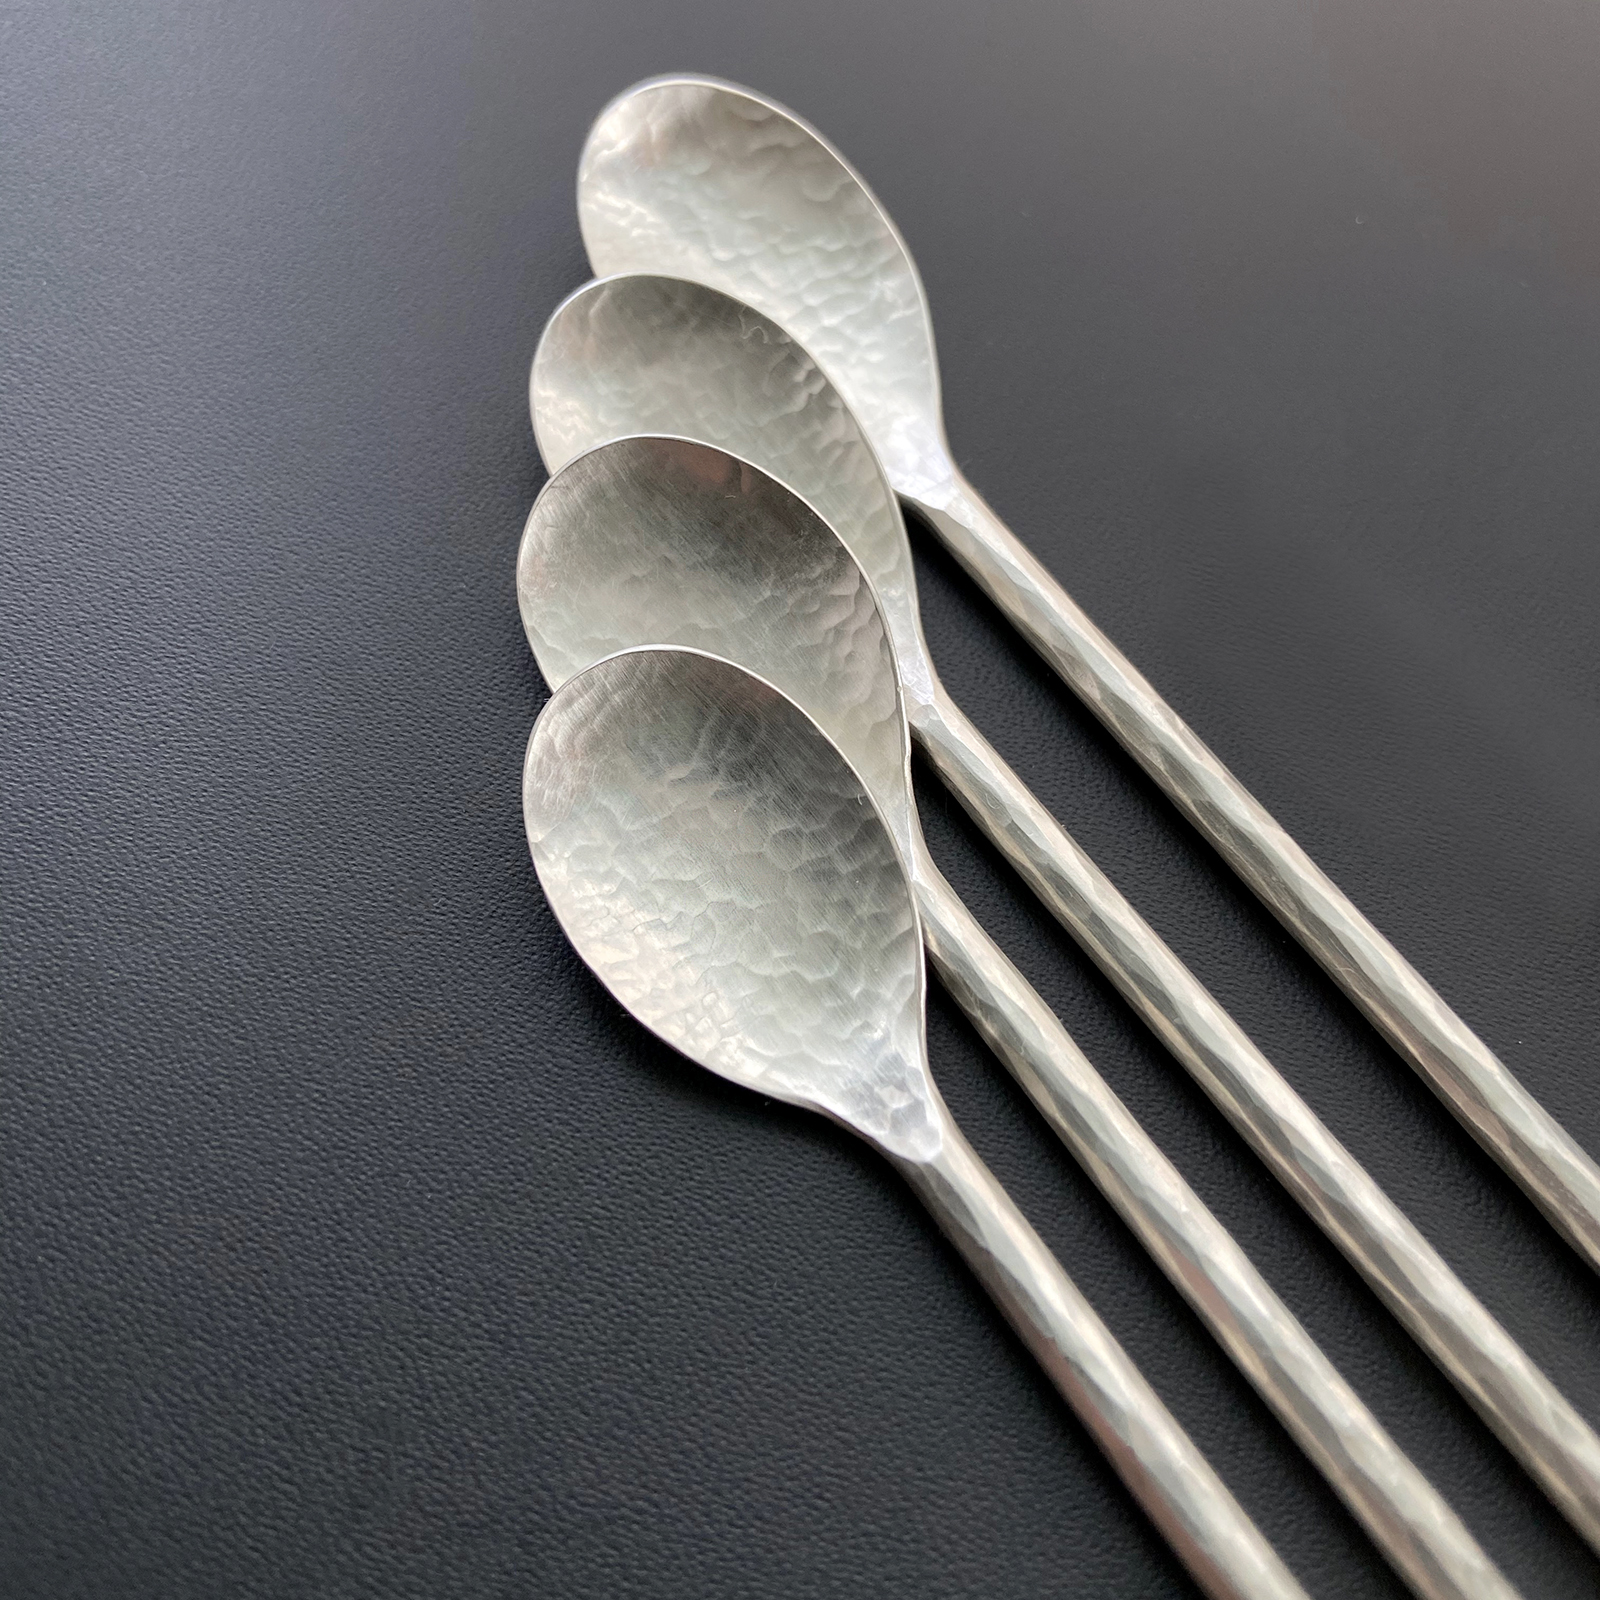 silver cocktail stirrer spoon